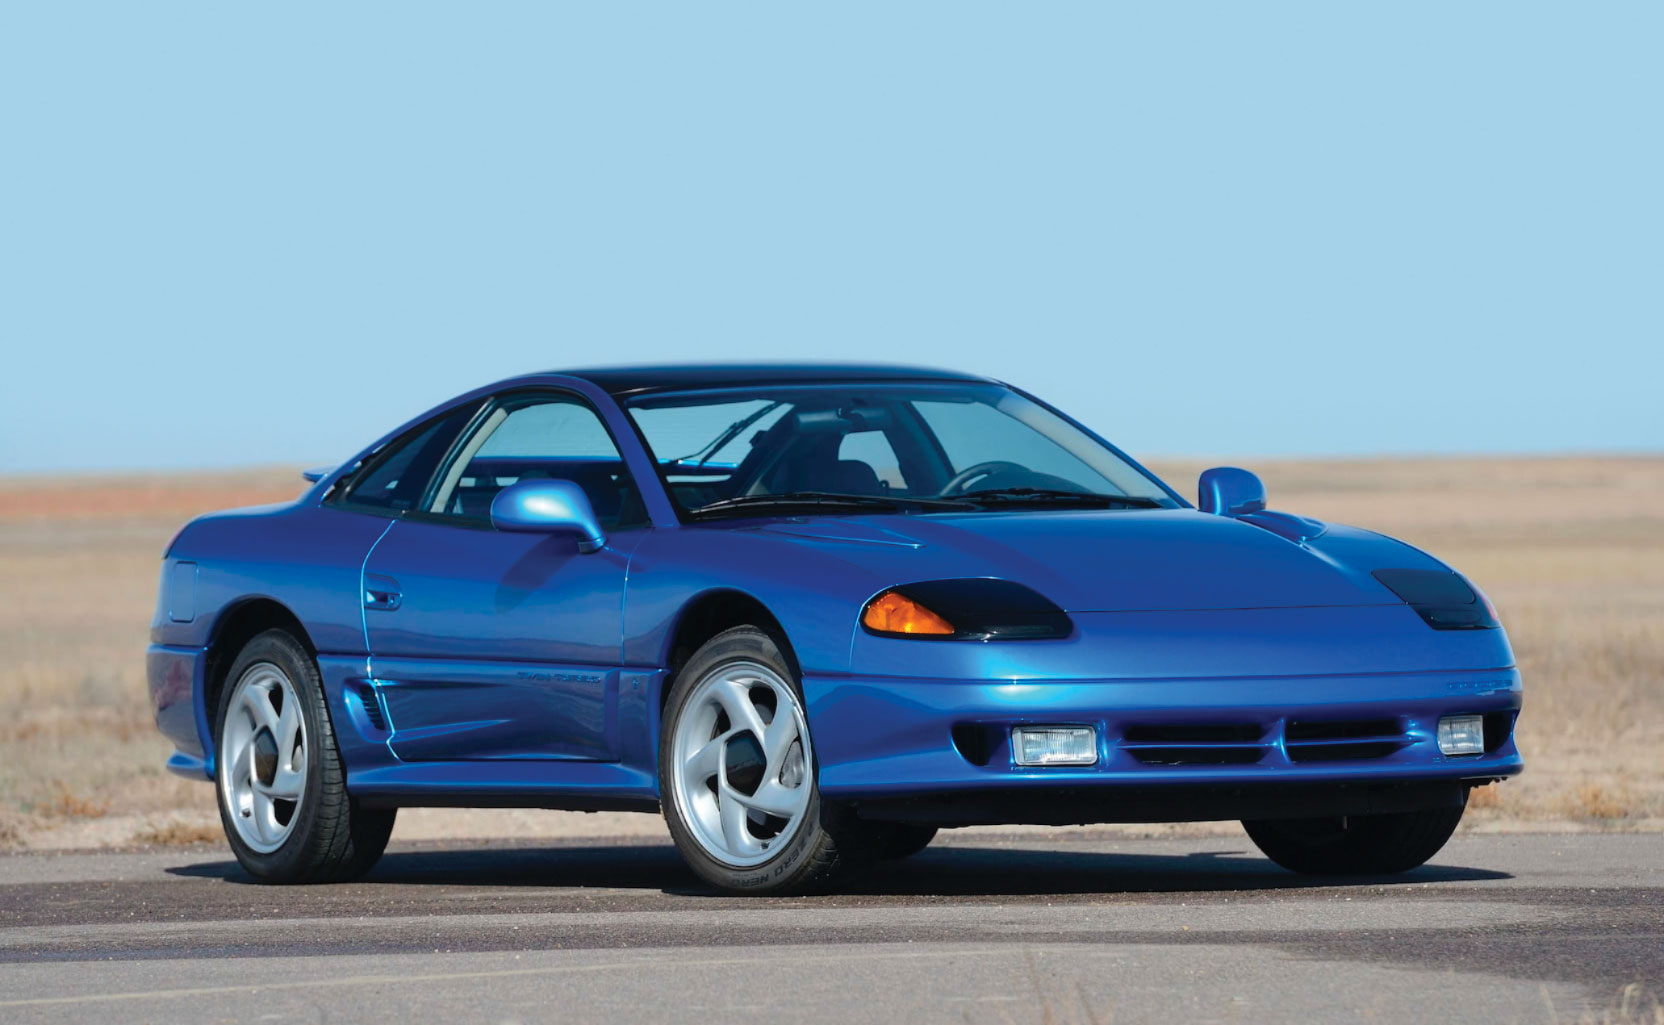 2020 Dodge Stealth Style